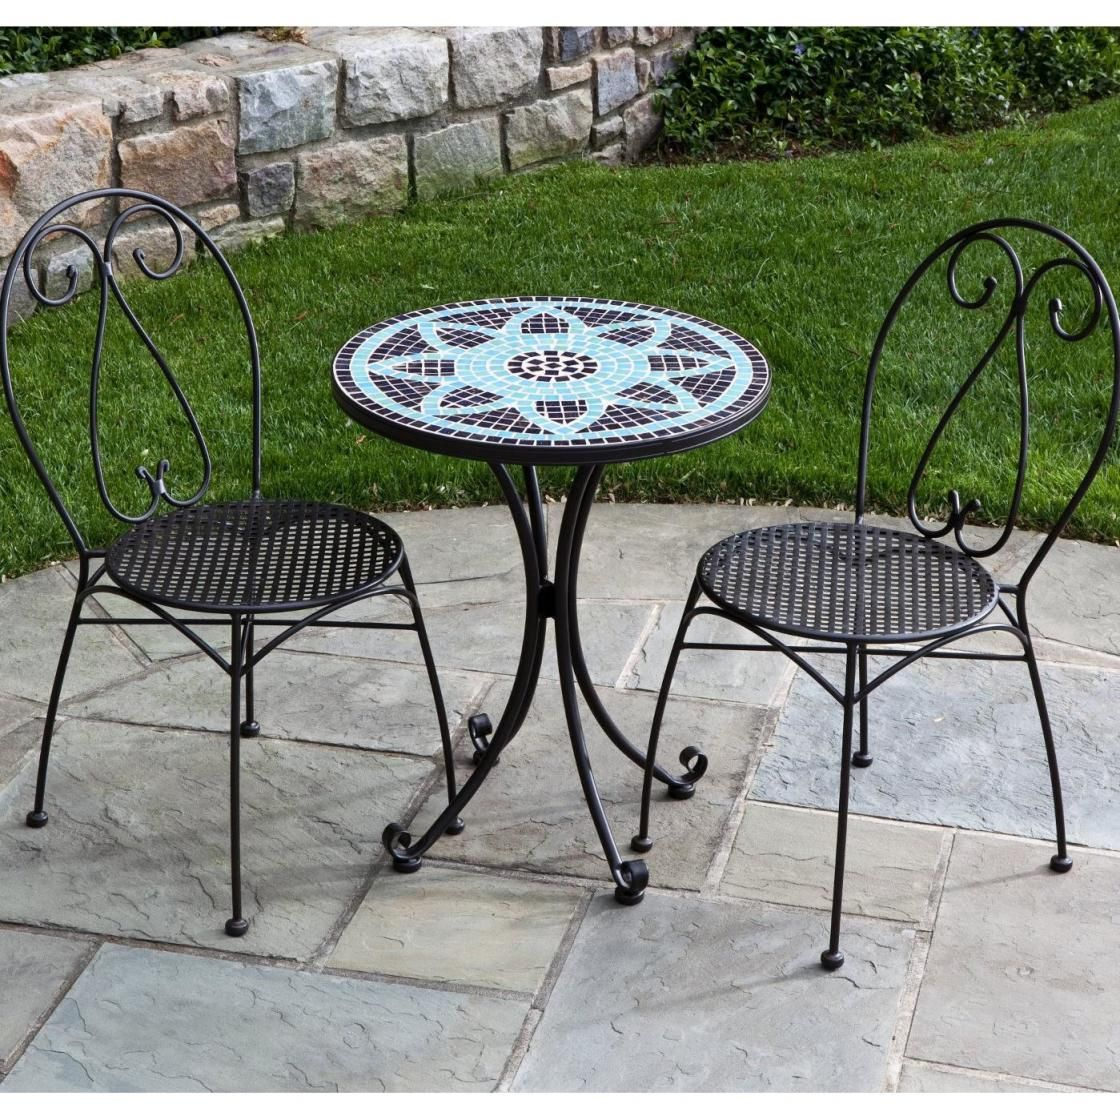 Outdoor Iron Table And Chair Set: Appealing-outdoor-patio-furniture-ideas-featuring-trendy